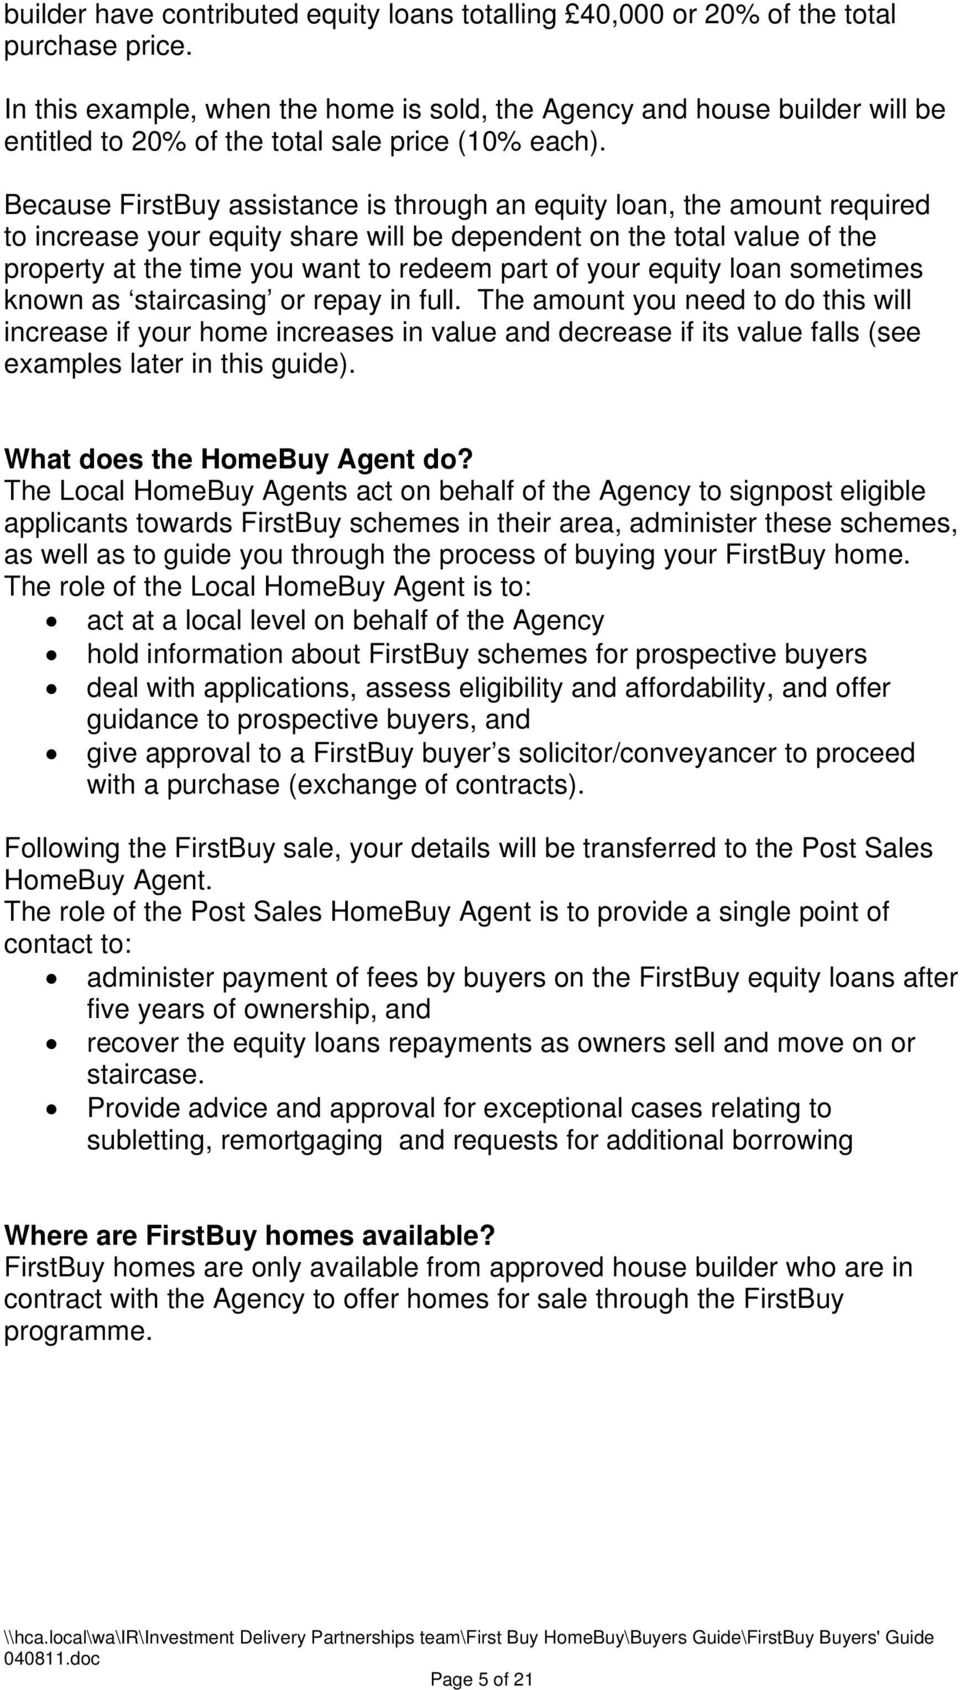 Because FirstBuy assistance is through an equity loan, the amount required to increase your equity share will be dependent on the total value of the property at the time you want to redeem part of